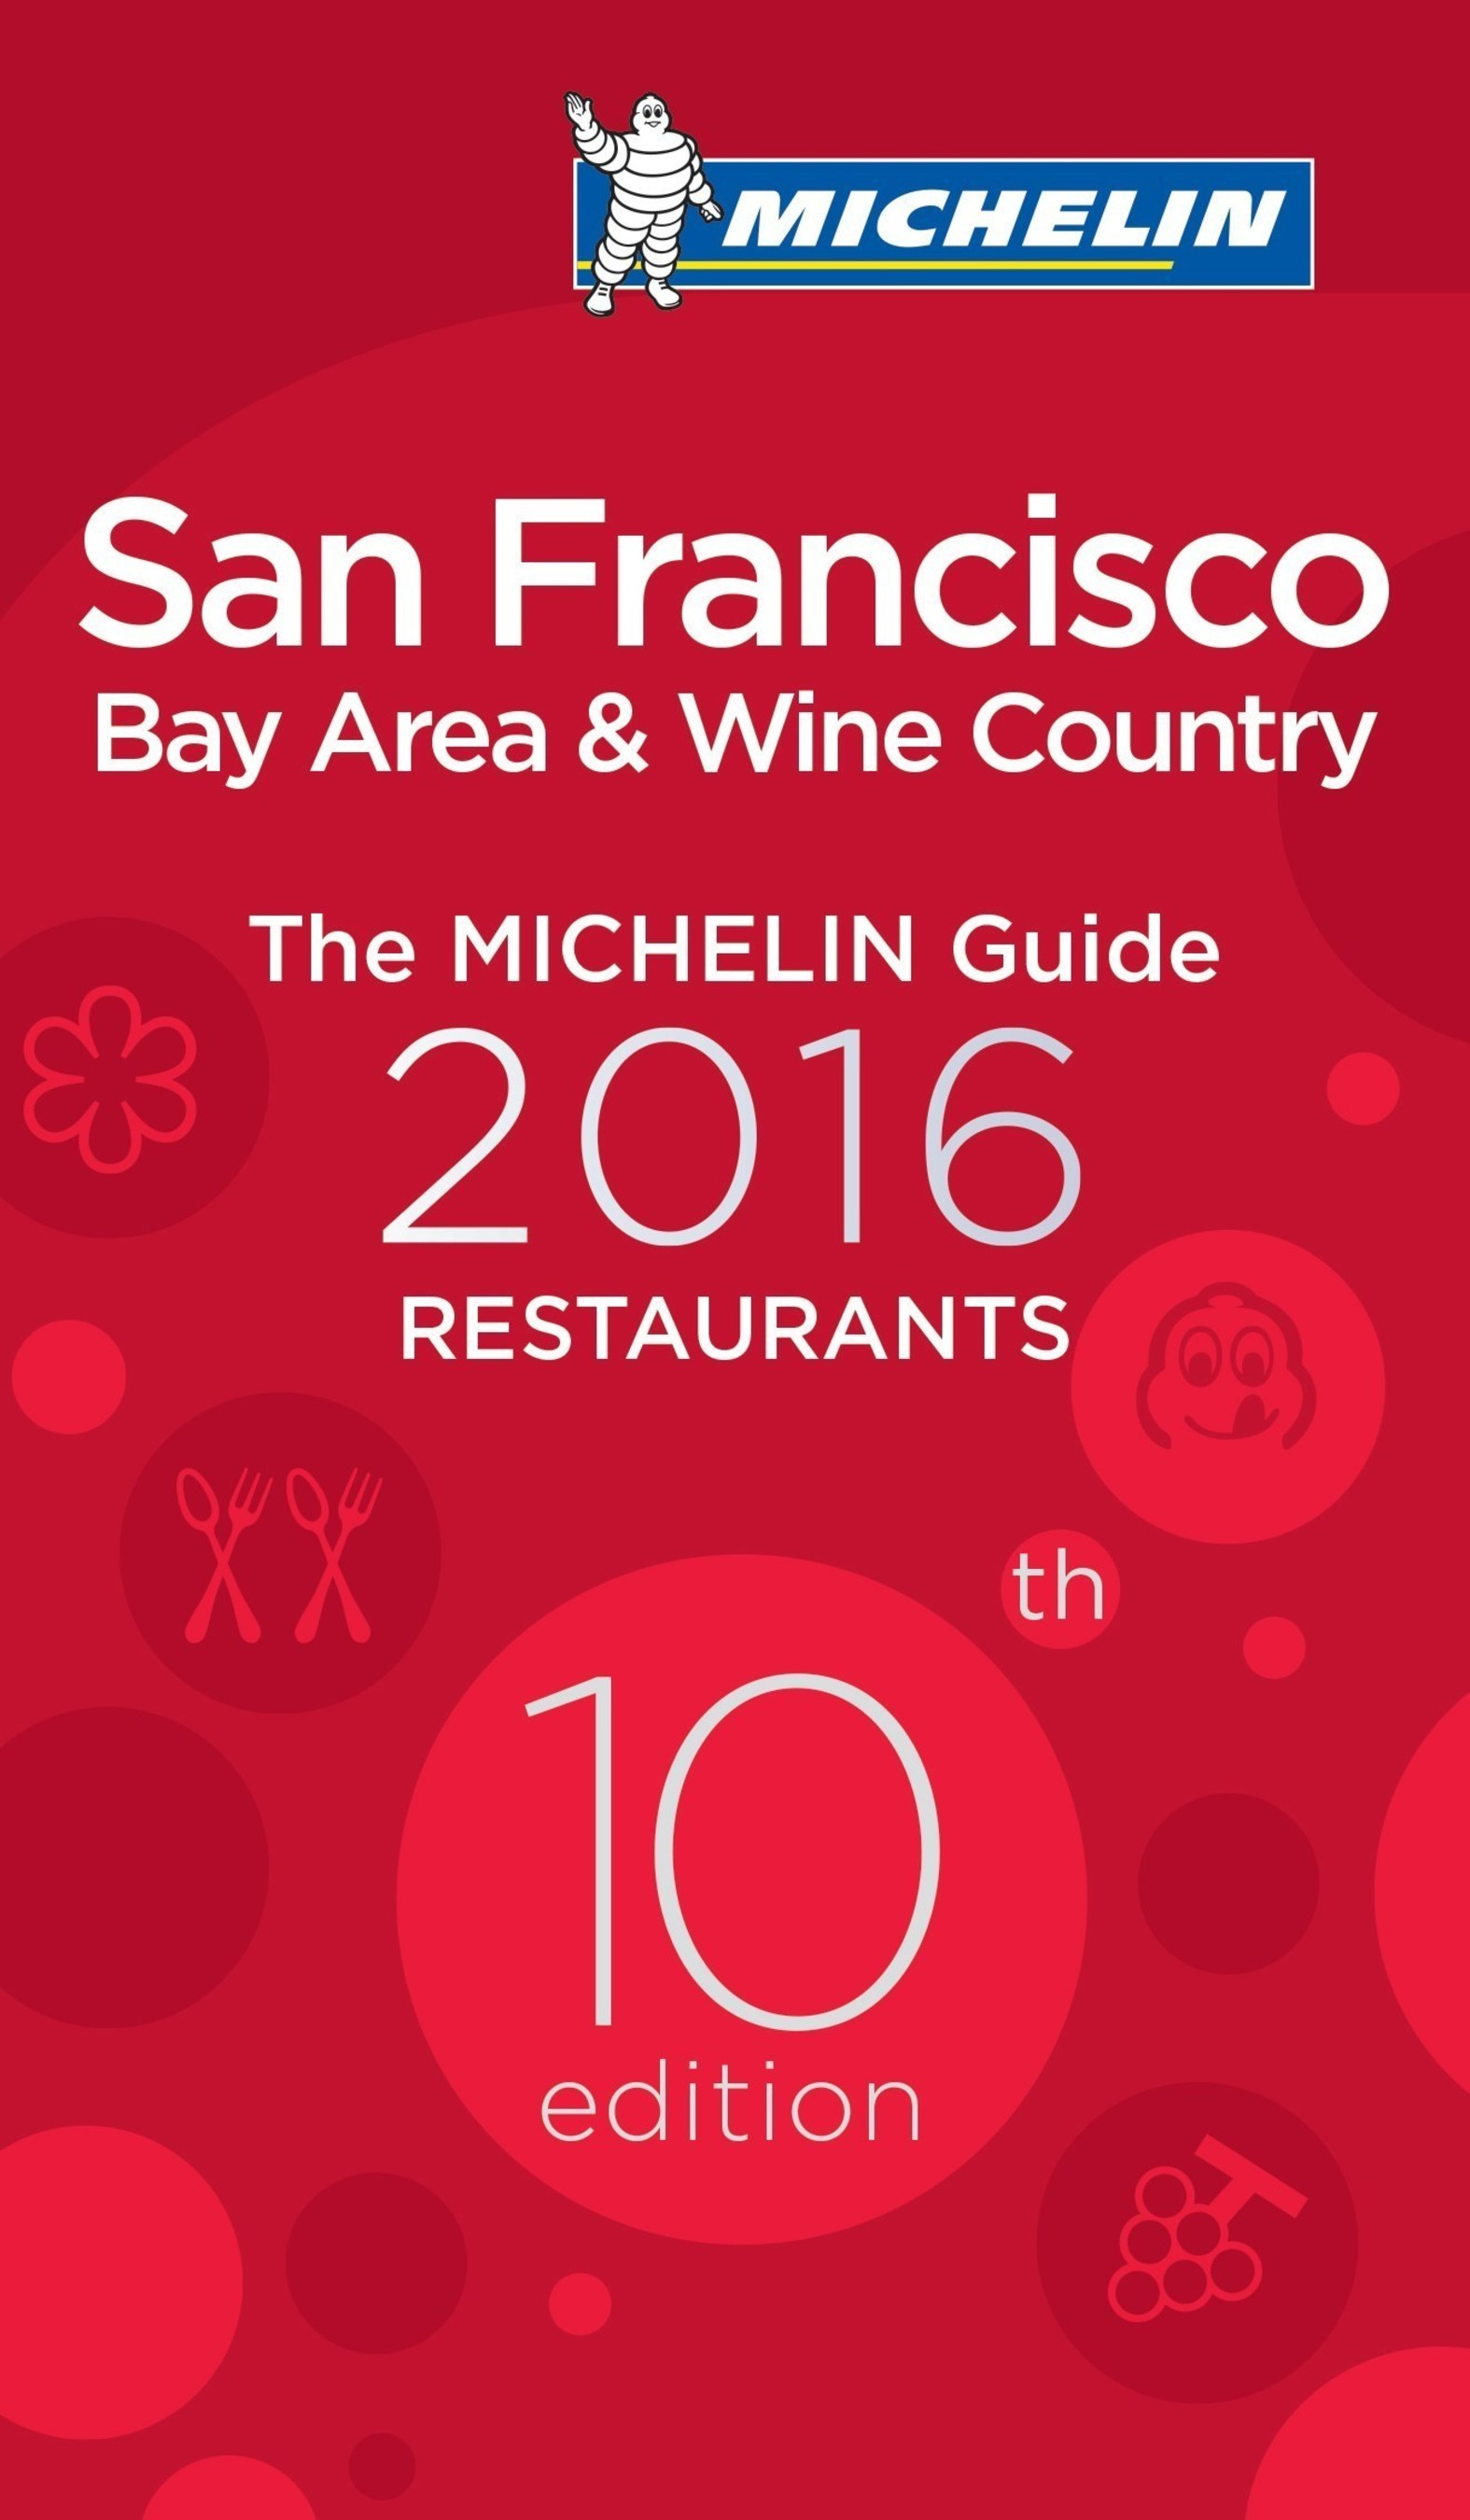 Michelin Stars Light up San Francisco and Bay Area in 10th Edition of Famed Restaurant Guide